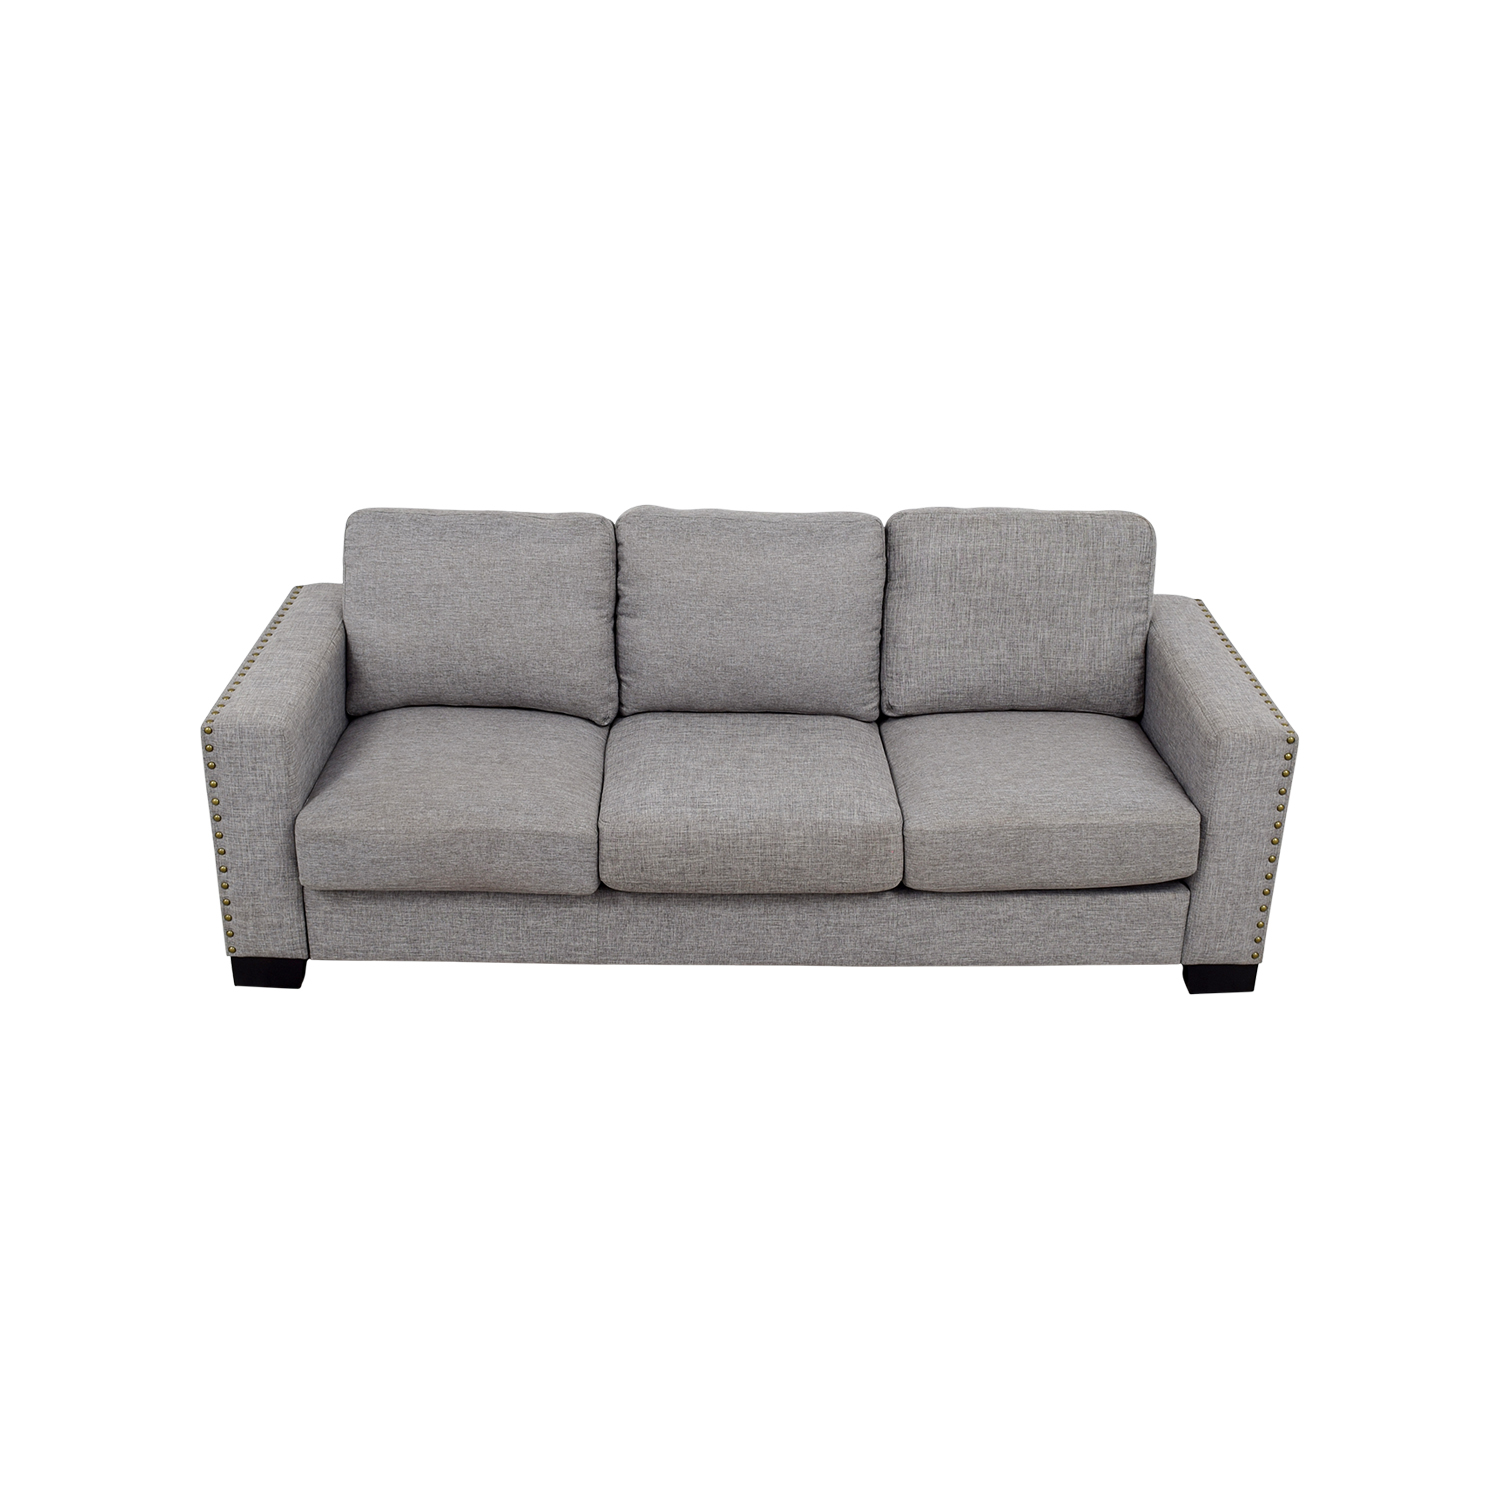 buy INSPIRE Q Grey Linen Nailhead Track Arm Sofa INSPIRE Q